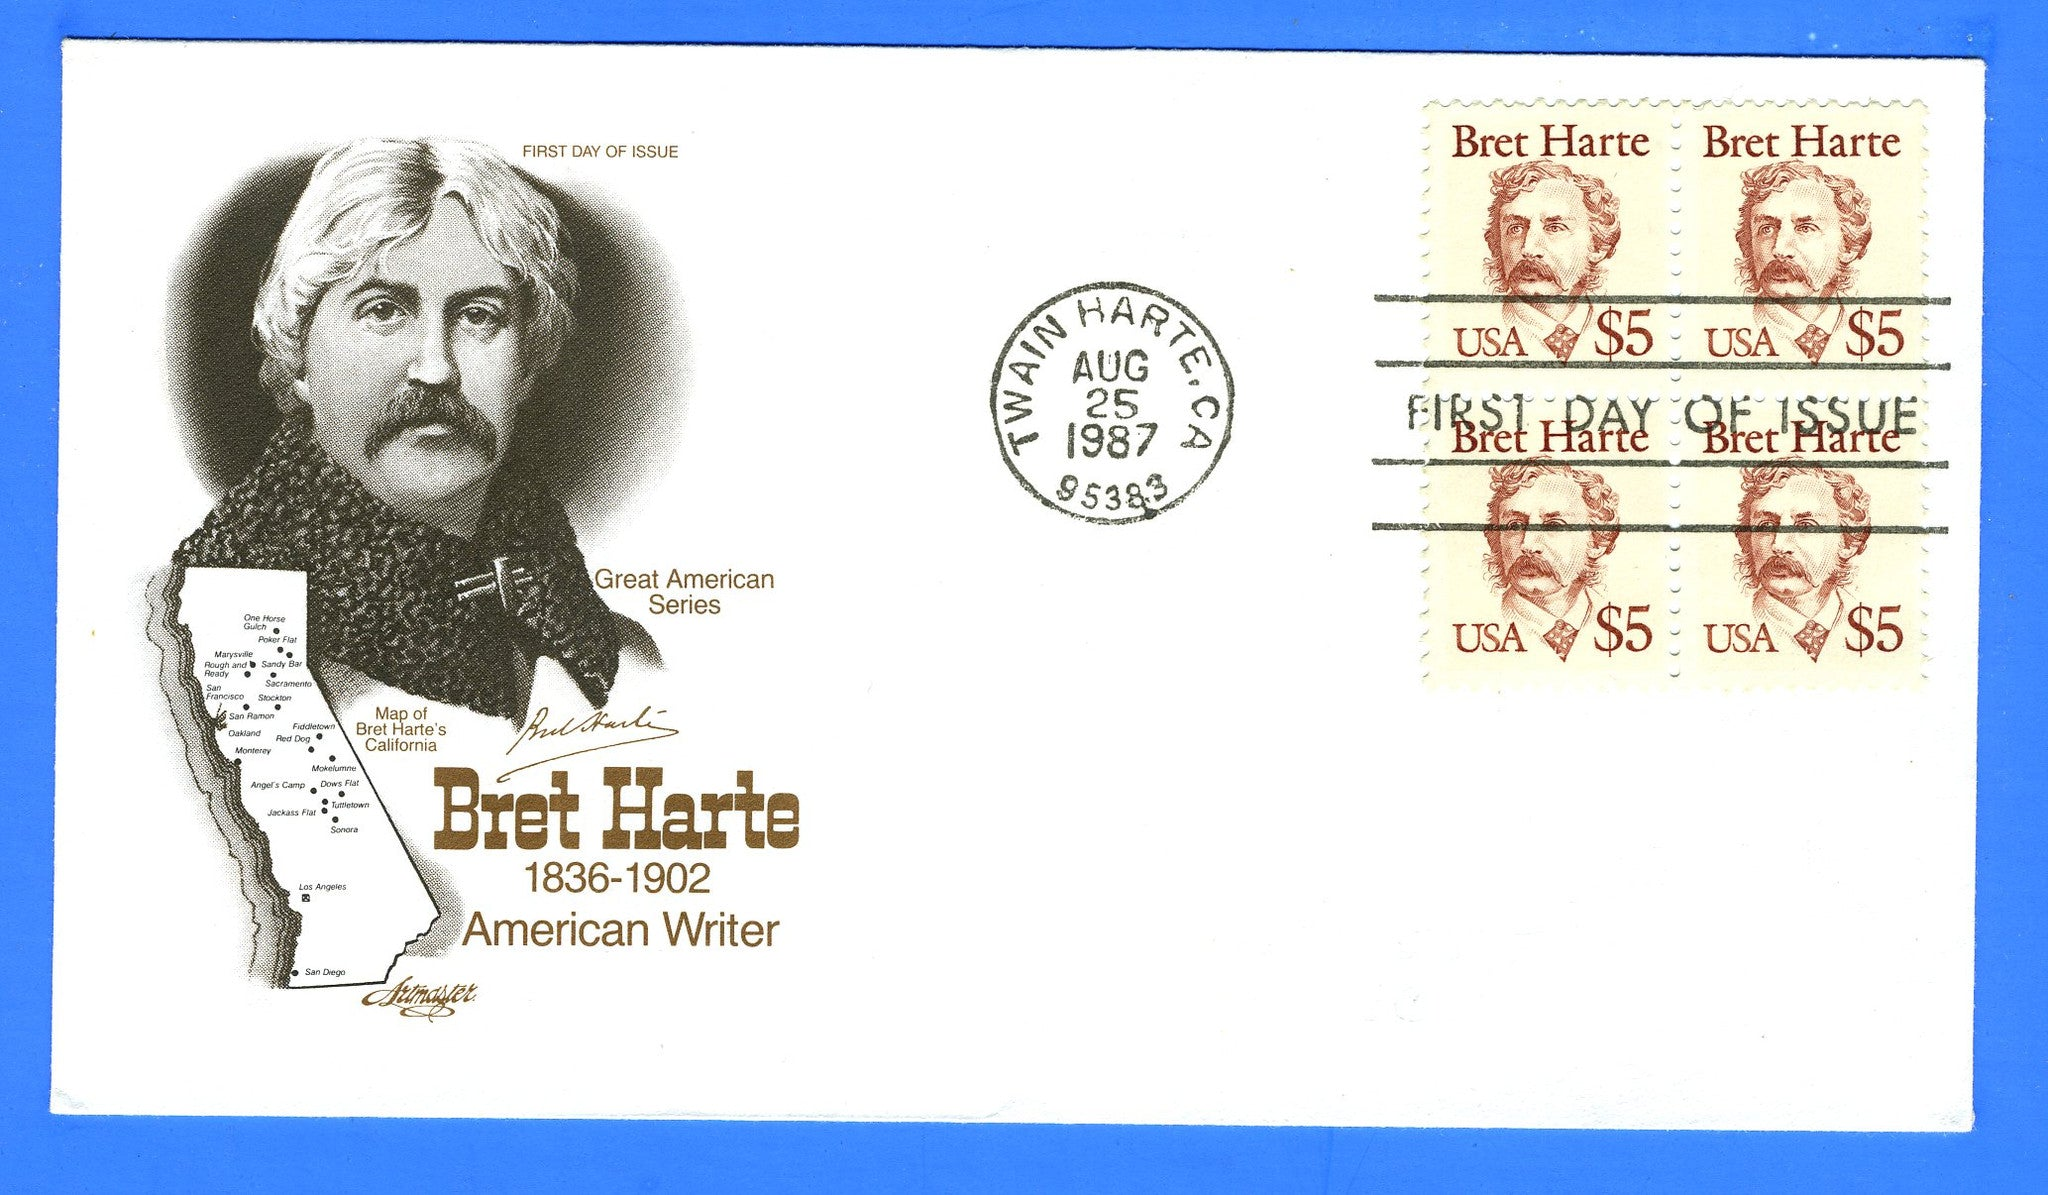 Scott 2196 $5 Bret Harte First Day Cover by Artmaster - Block of 4